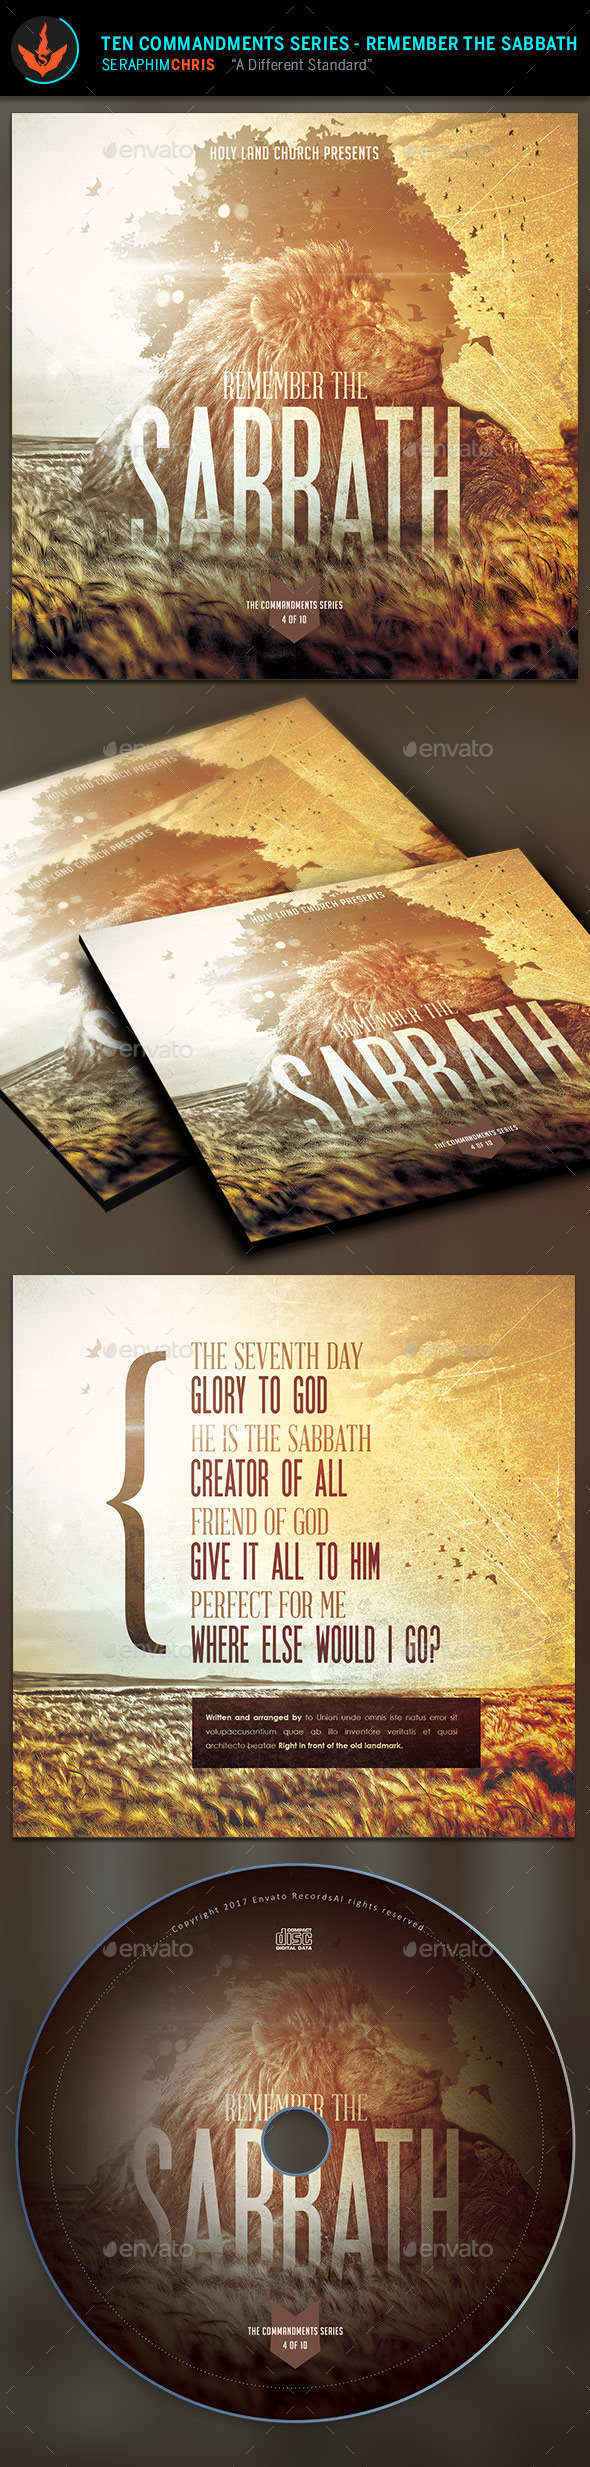 GraphicRiver Remember the Sabbath CD Artwork Template 9723252